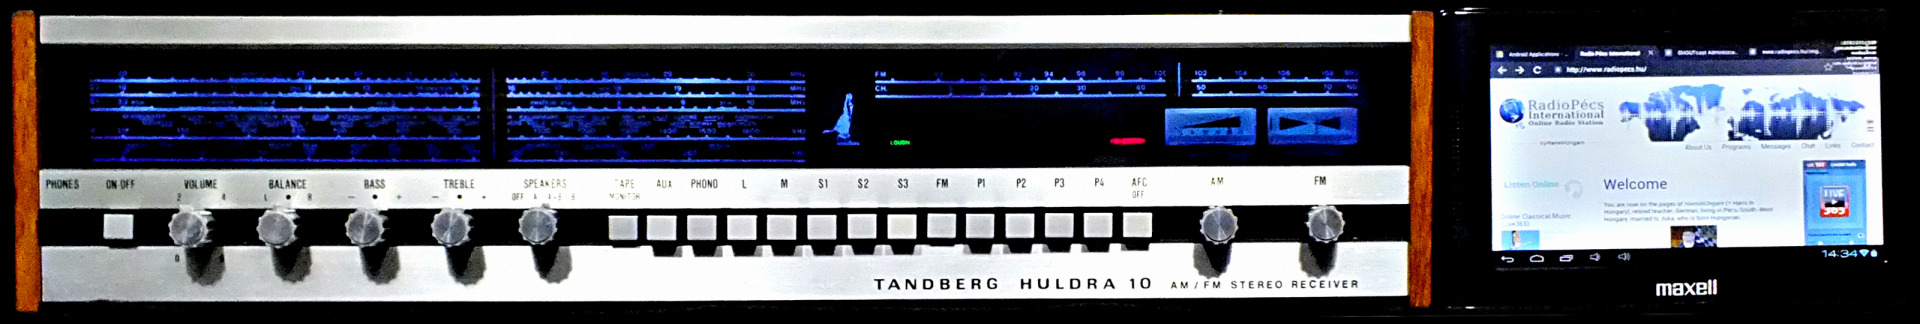 Tandberg Huldra 10 and Maxell C7 playing Radio Pécs International